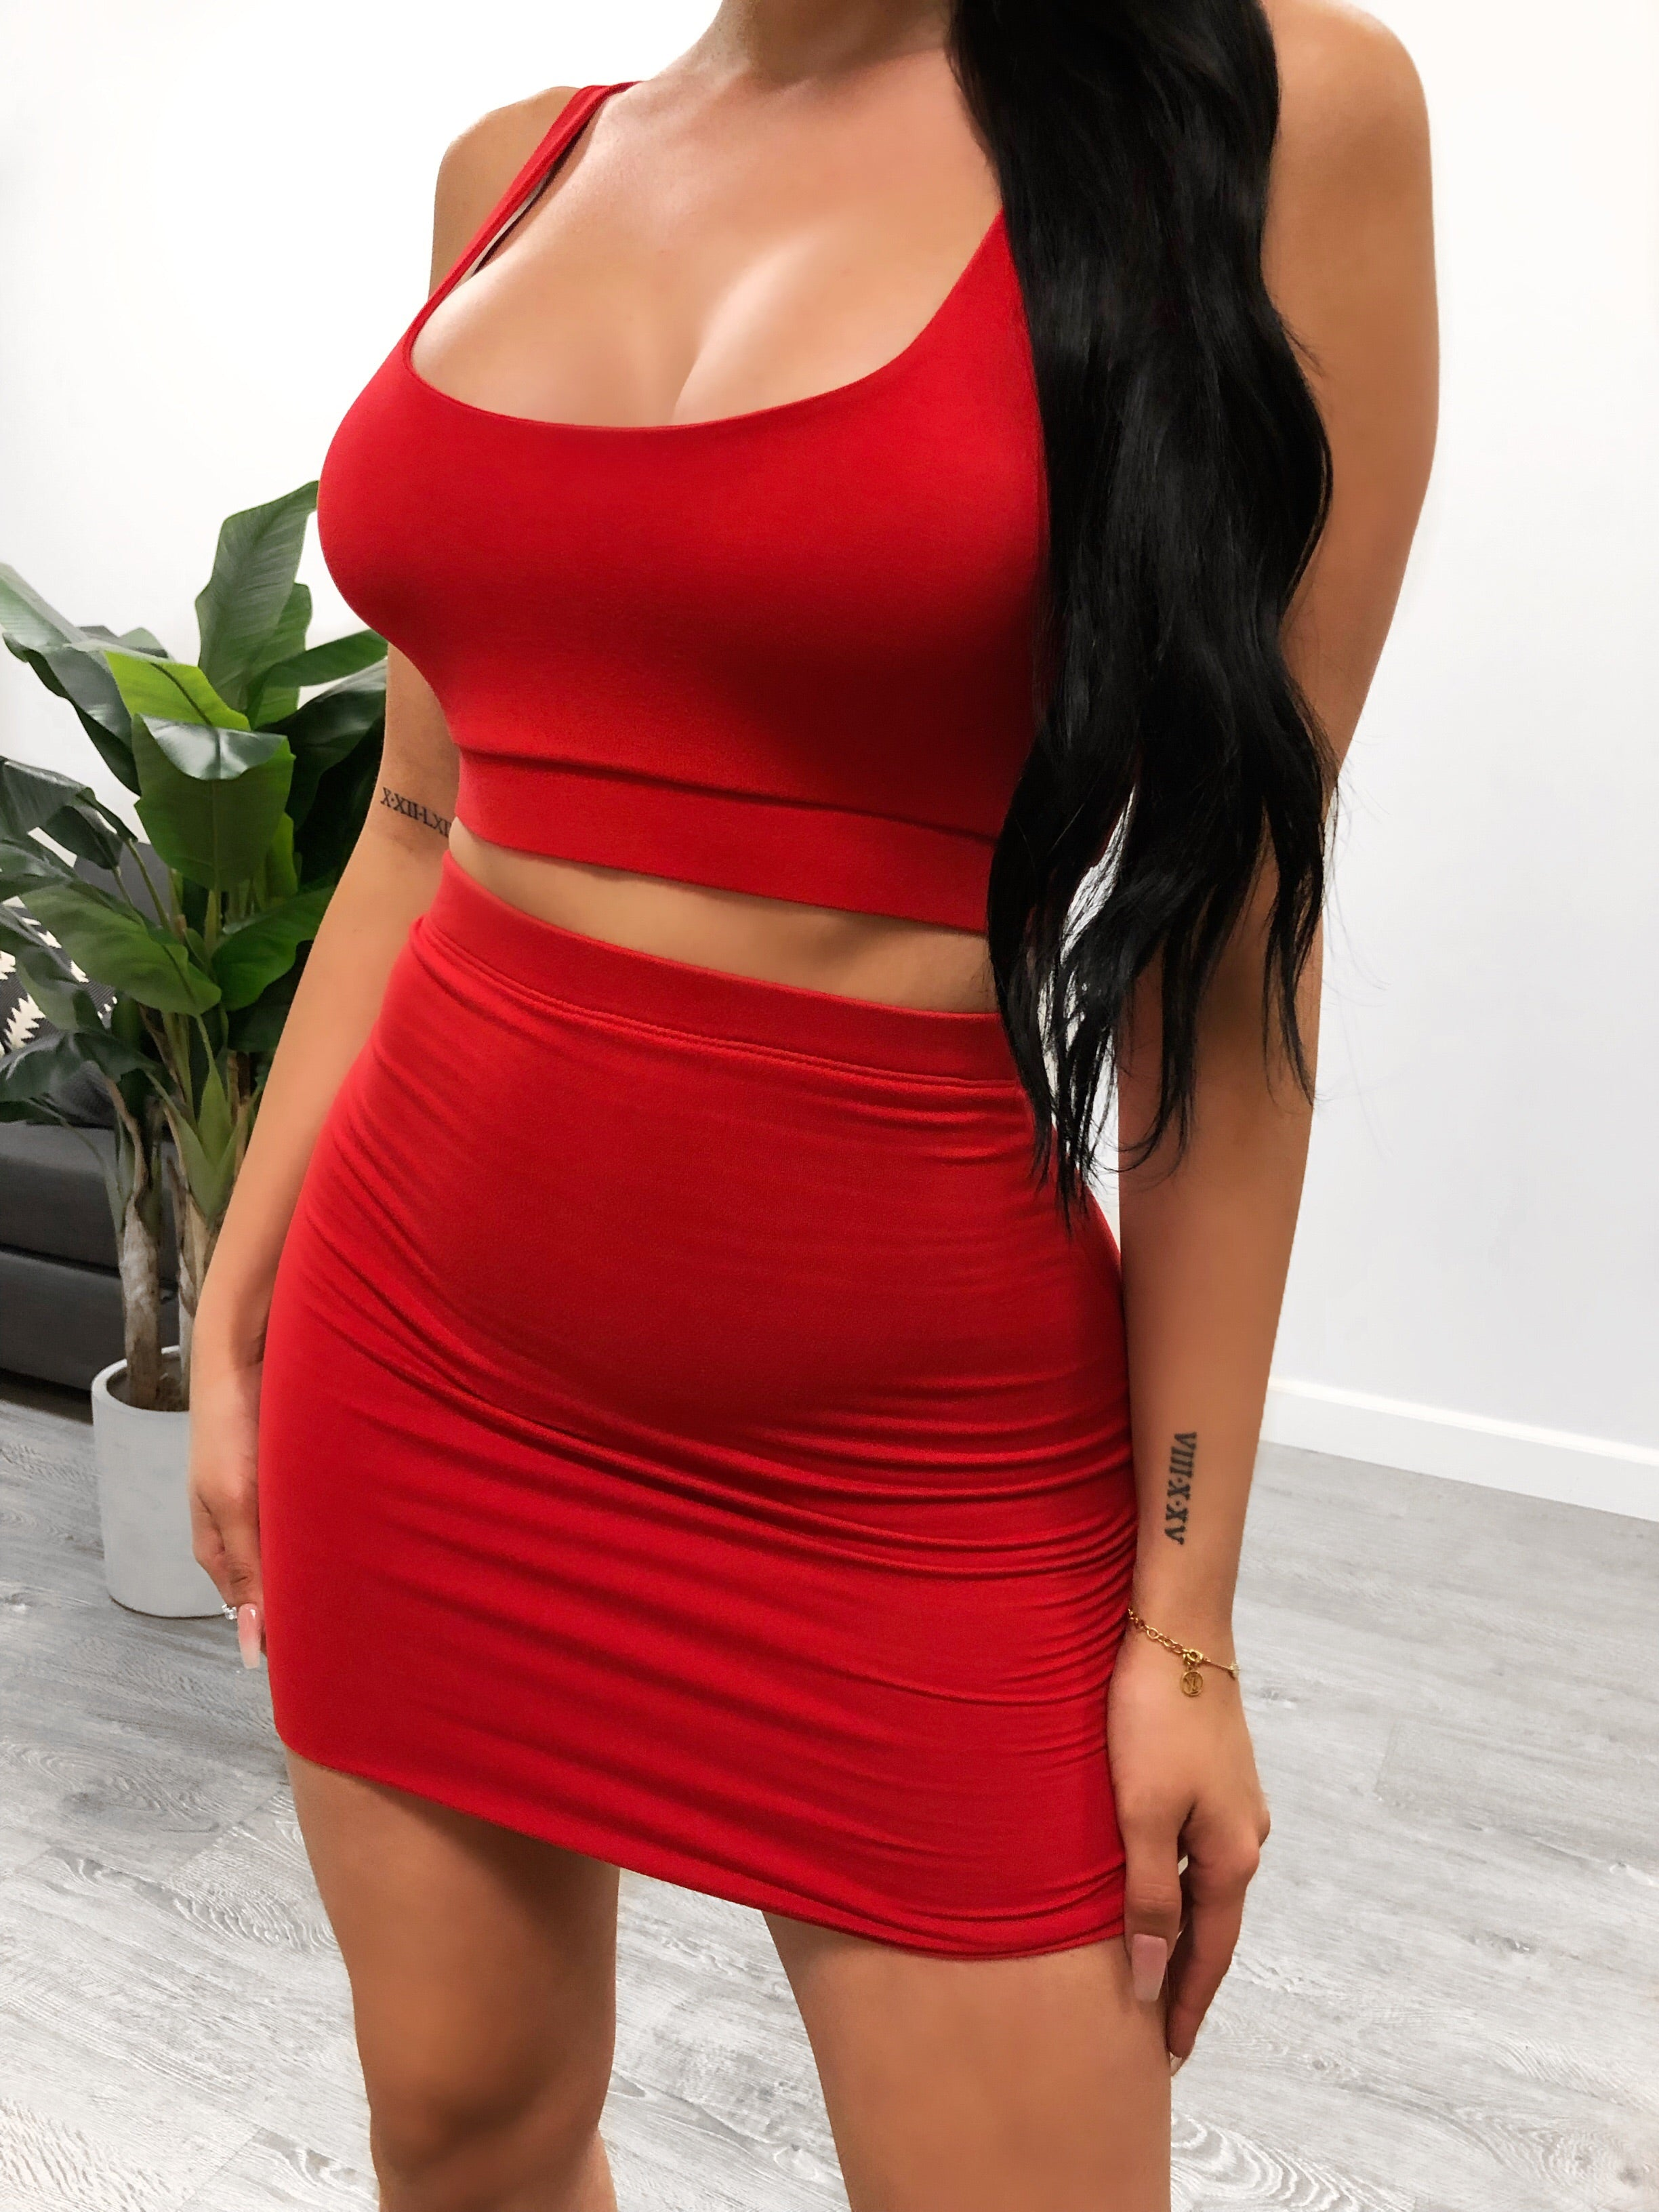 red two piece with a spaghetti strap tank top with a low u cut that shows mid cleavage. top length stops above belly button. bottoms are highways skirt that ends at mid thigh. material is stretchy.